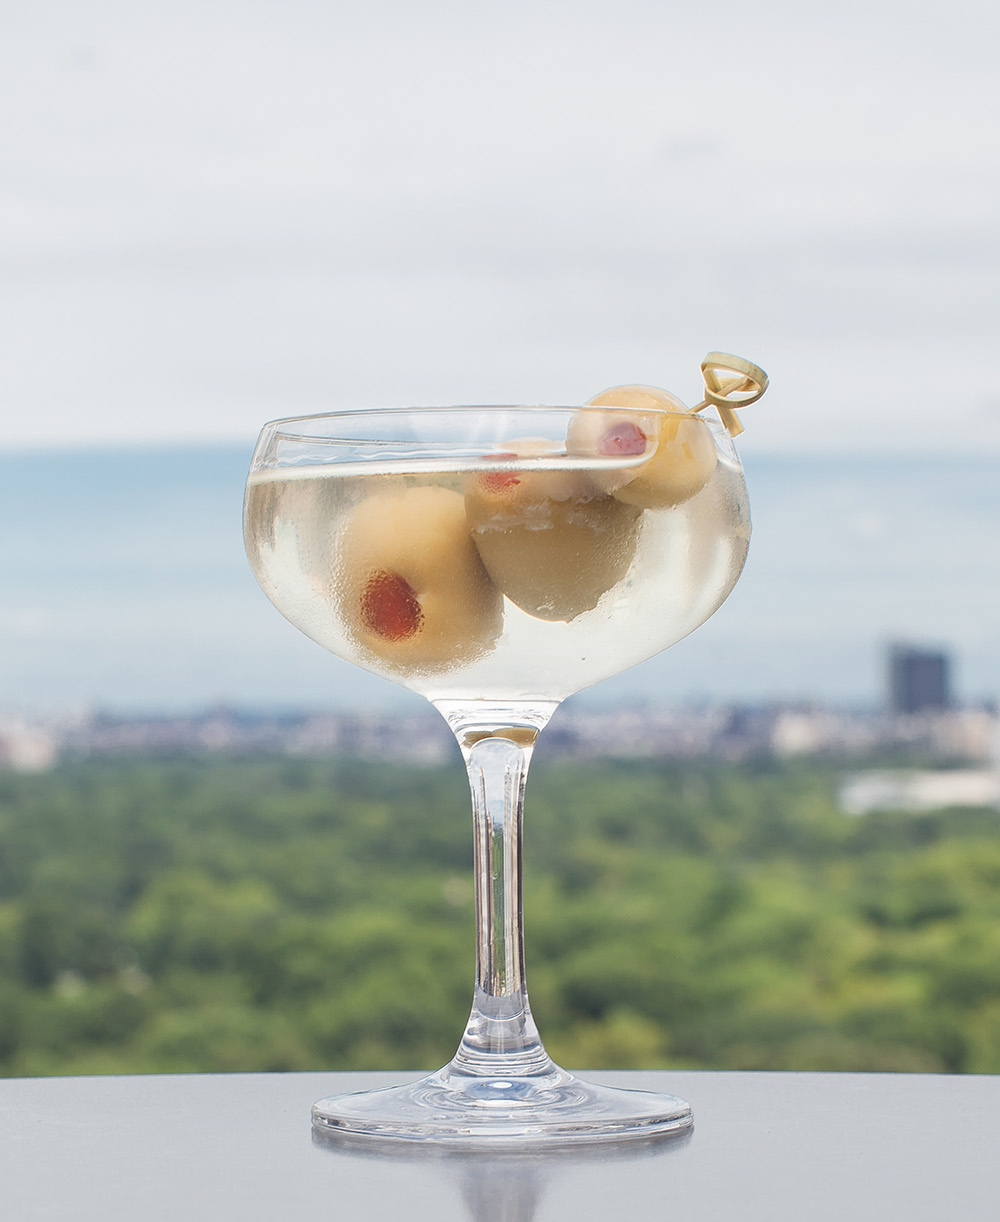 Best Chicago Martini Recipe-How To Make A Chicago Martini